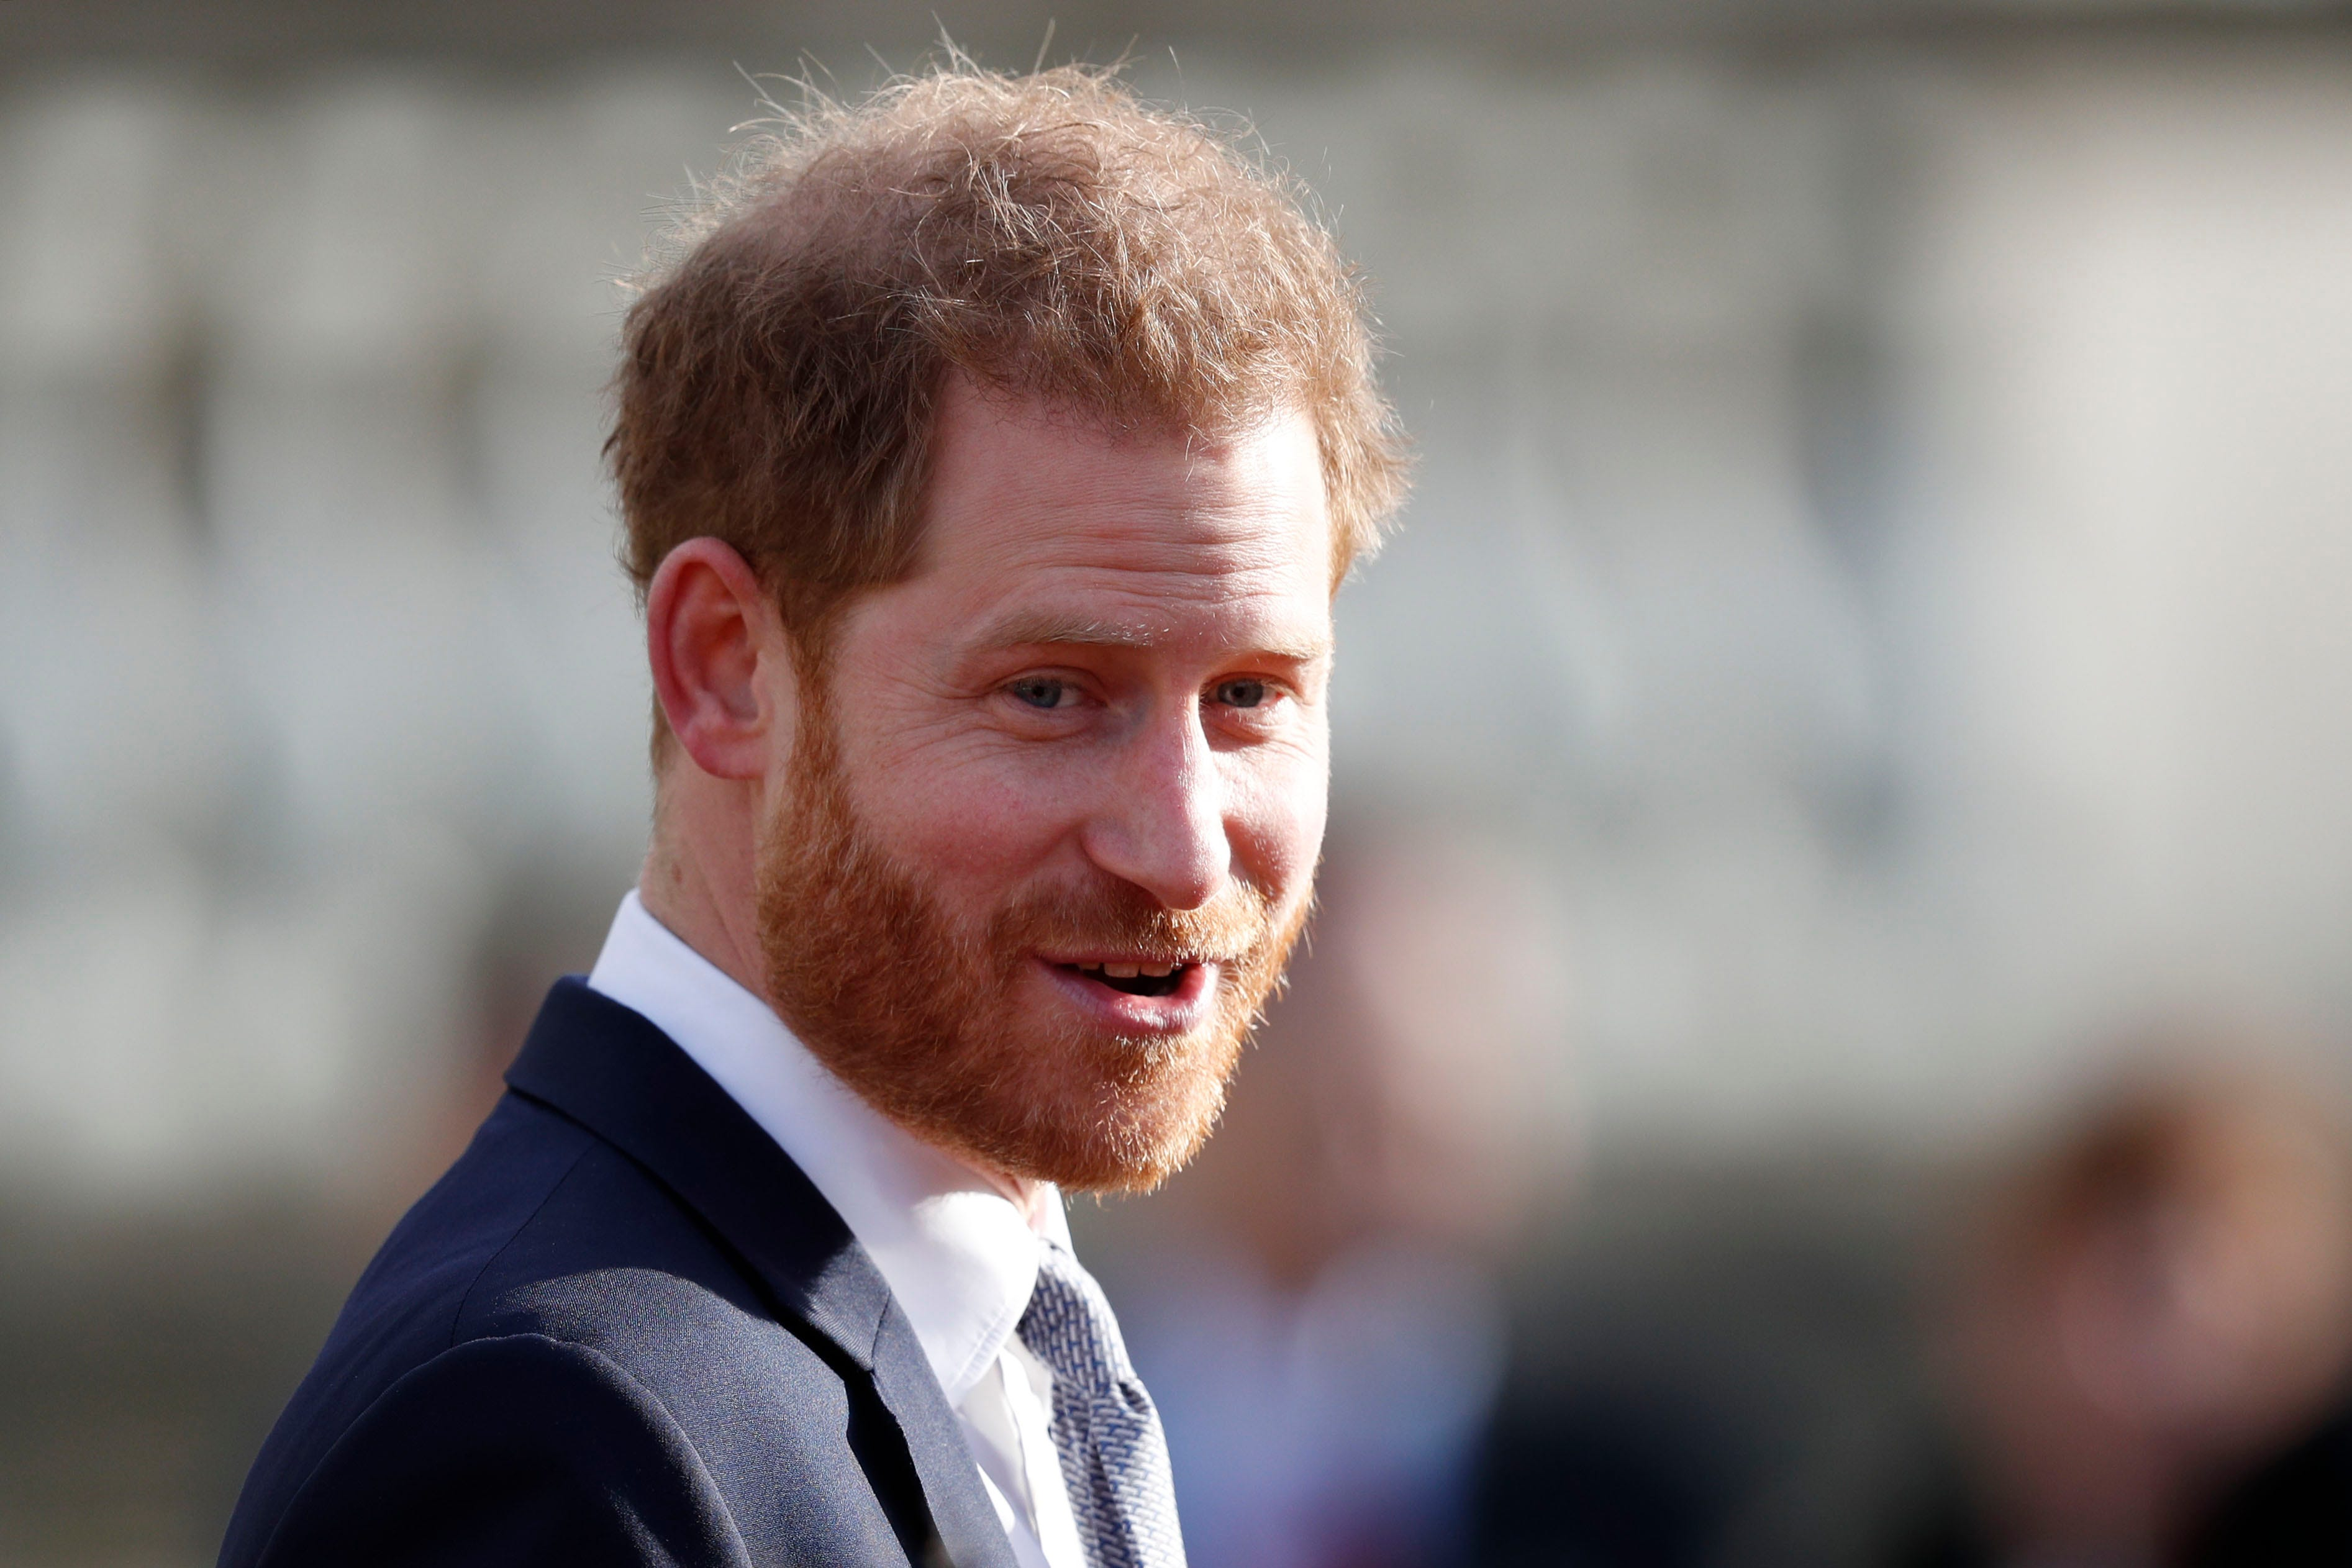 Prince Harry celebrates 36th birthday: The same age Princess Diana was when she died